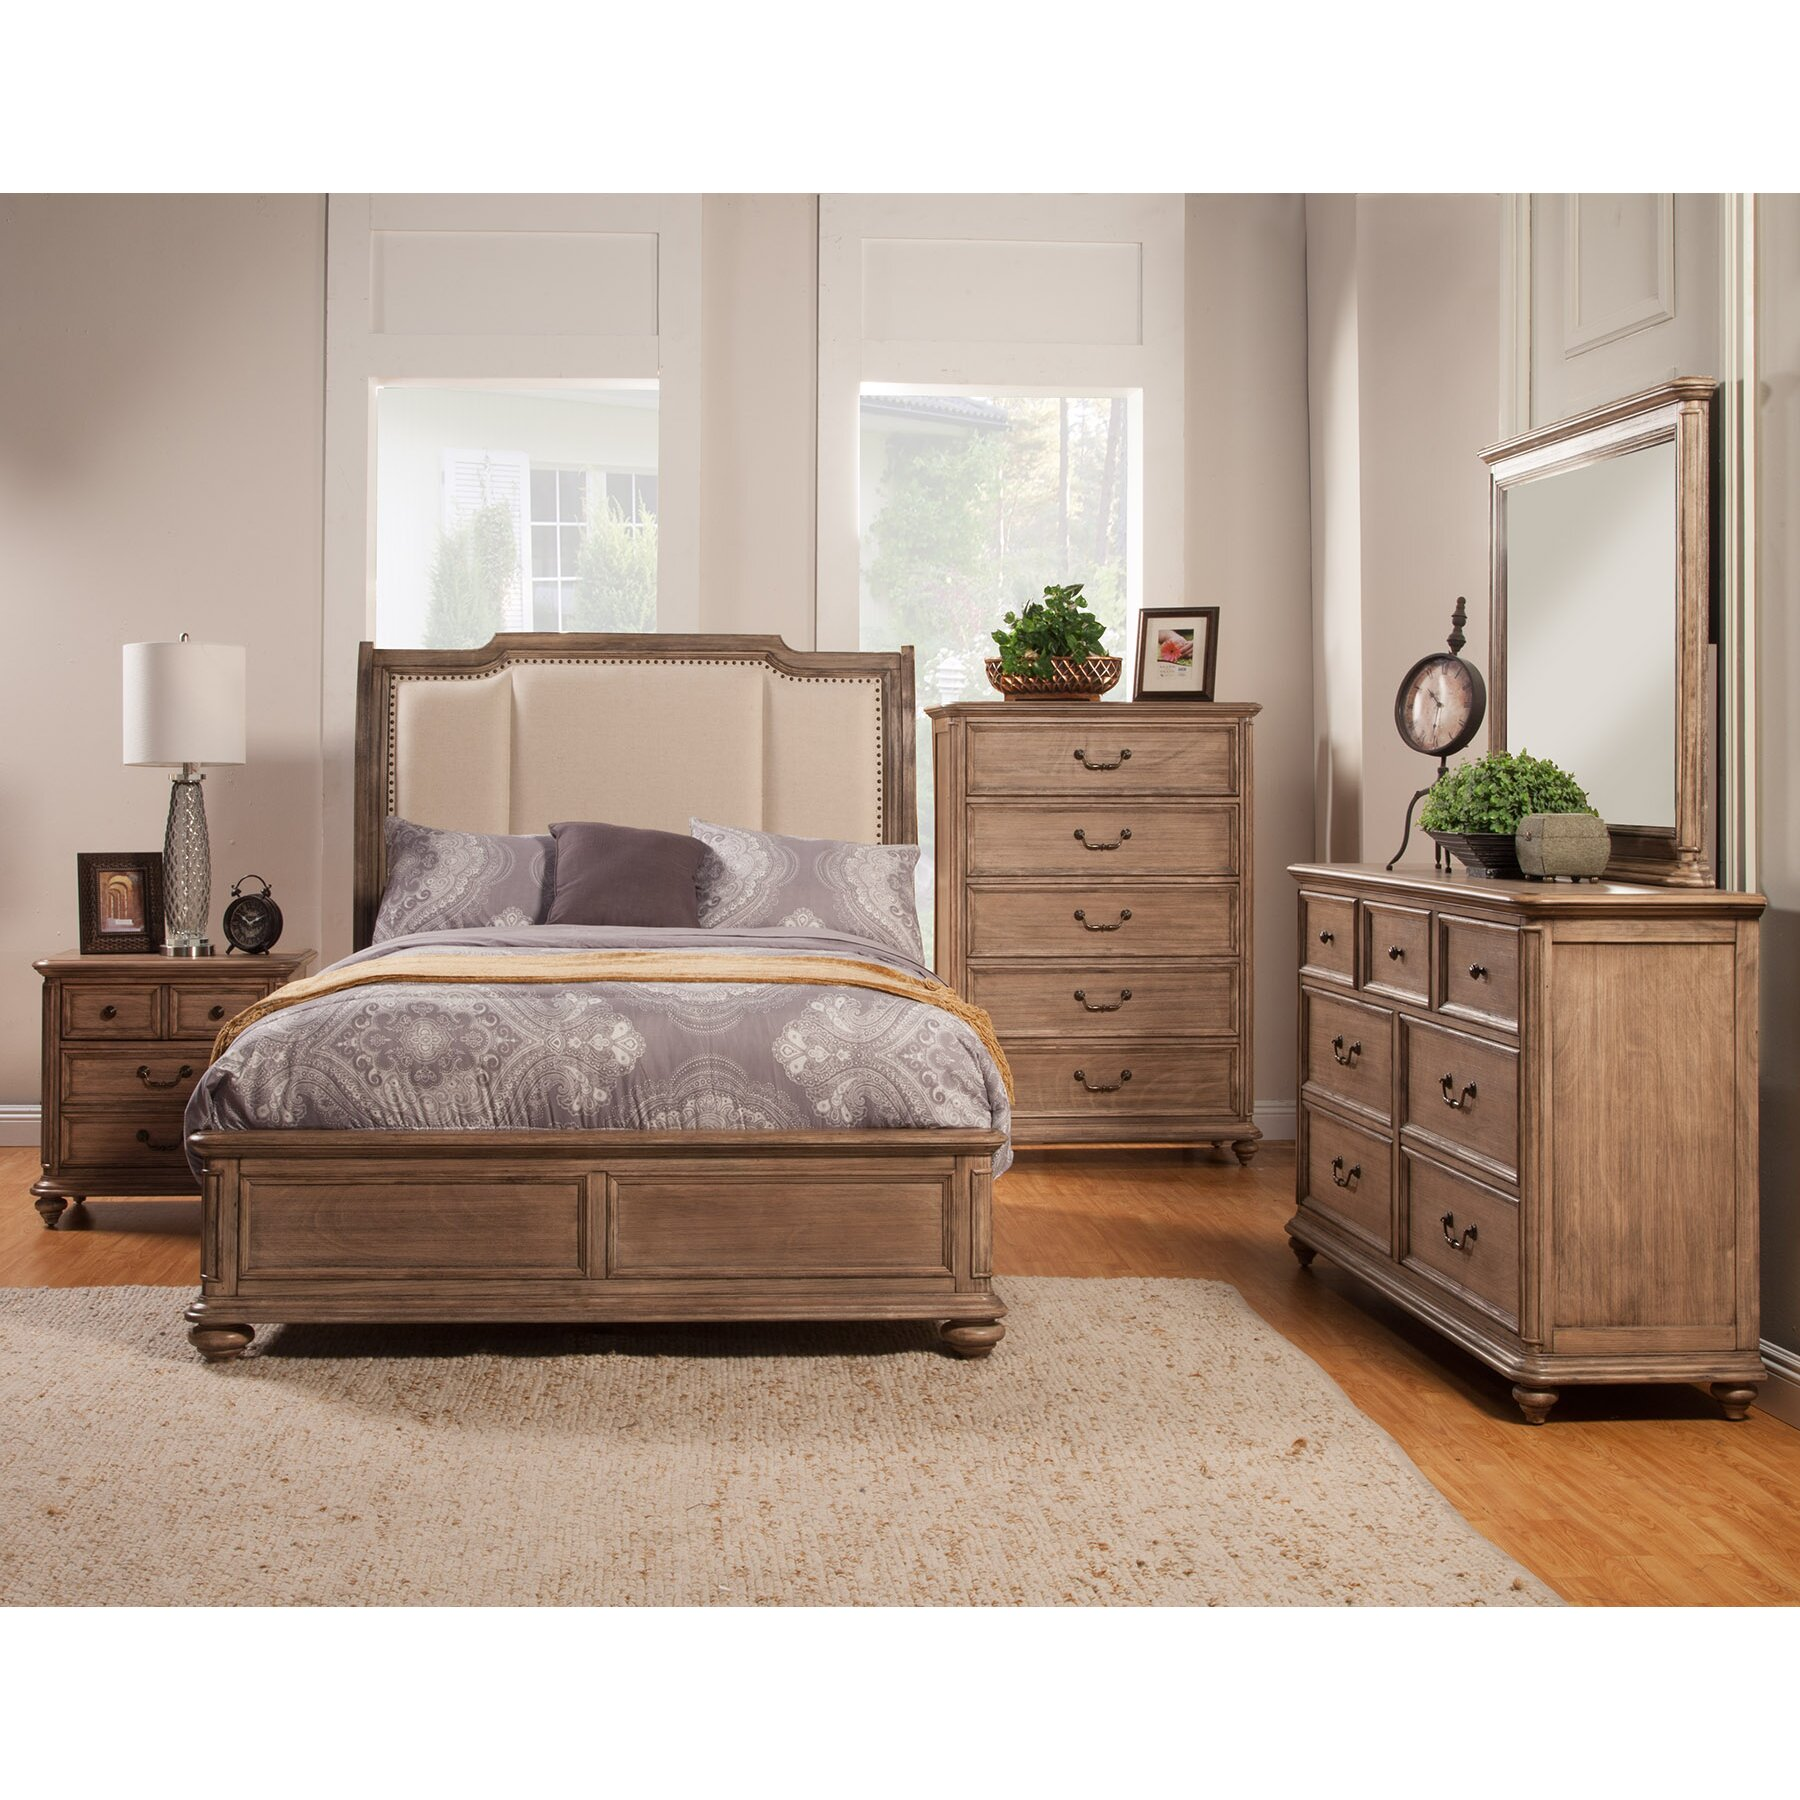 Alpine furniture melbourne panel customizable bedroom set for Bedroom suites for sale cheap